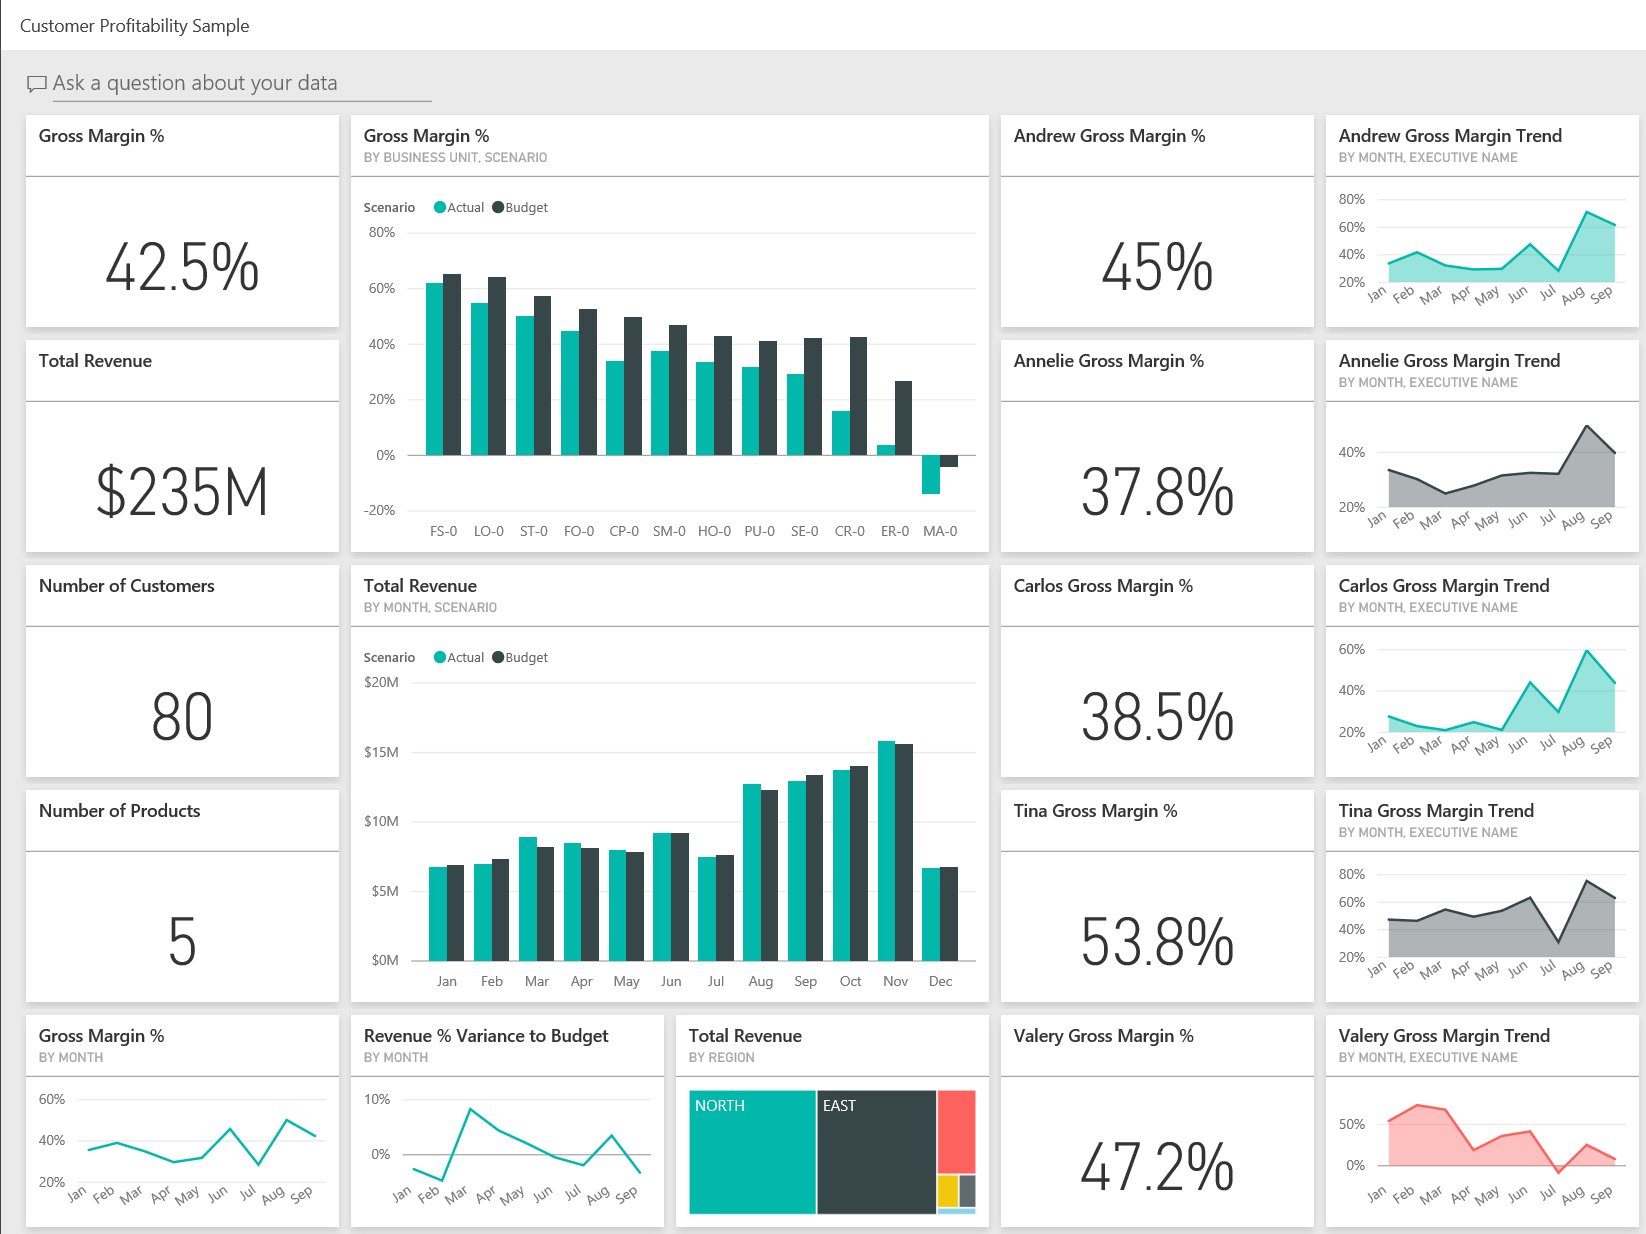 Kpi Scorecard Template Excel and Customer Profitability Sample for Power Bi Take A tour